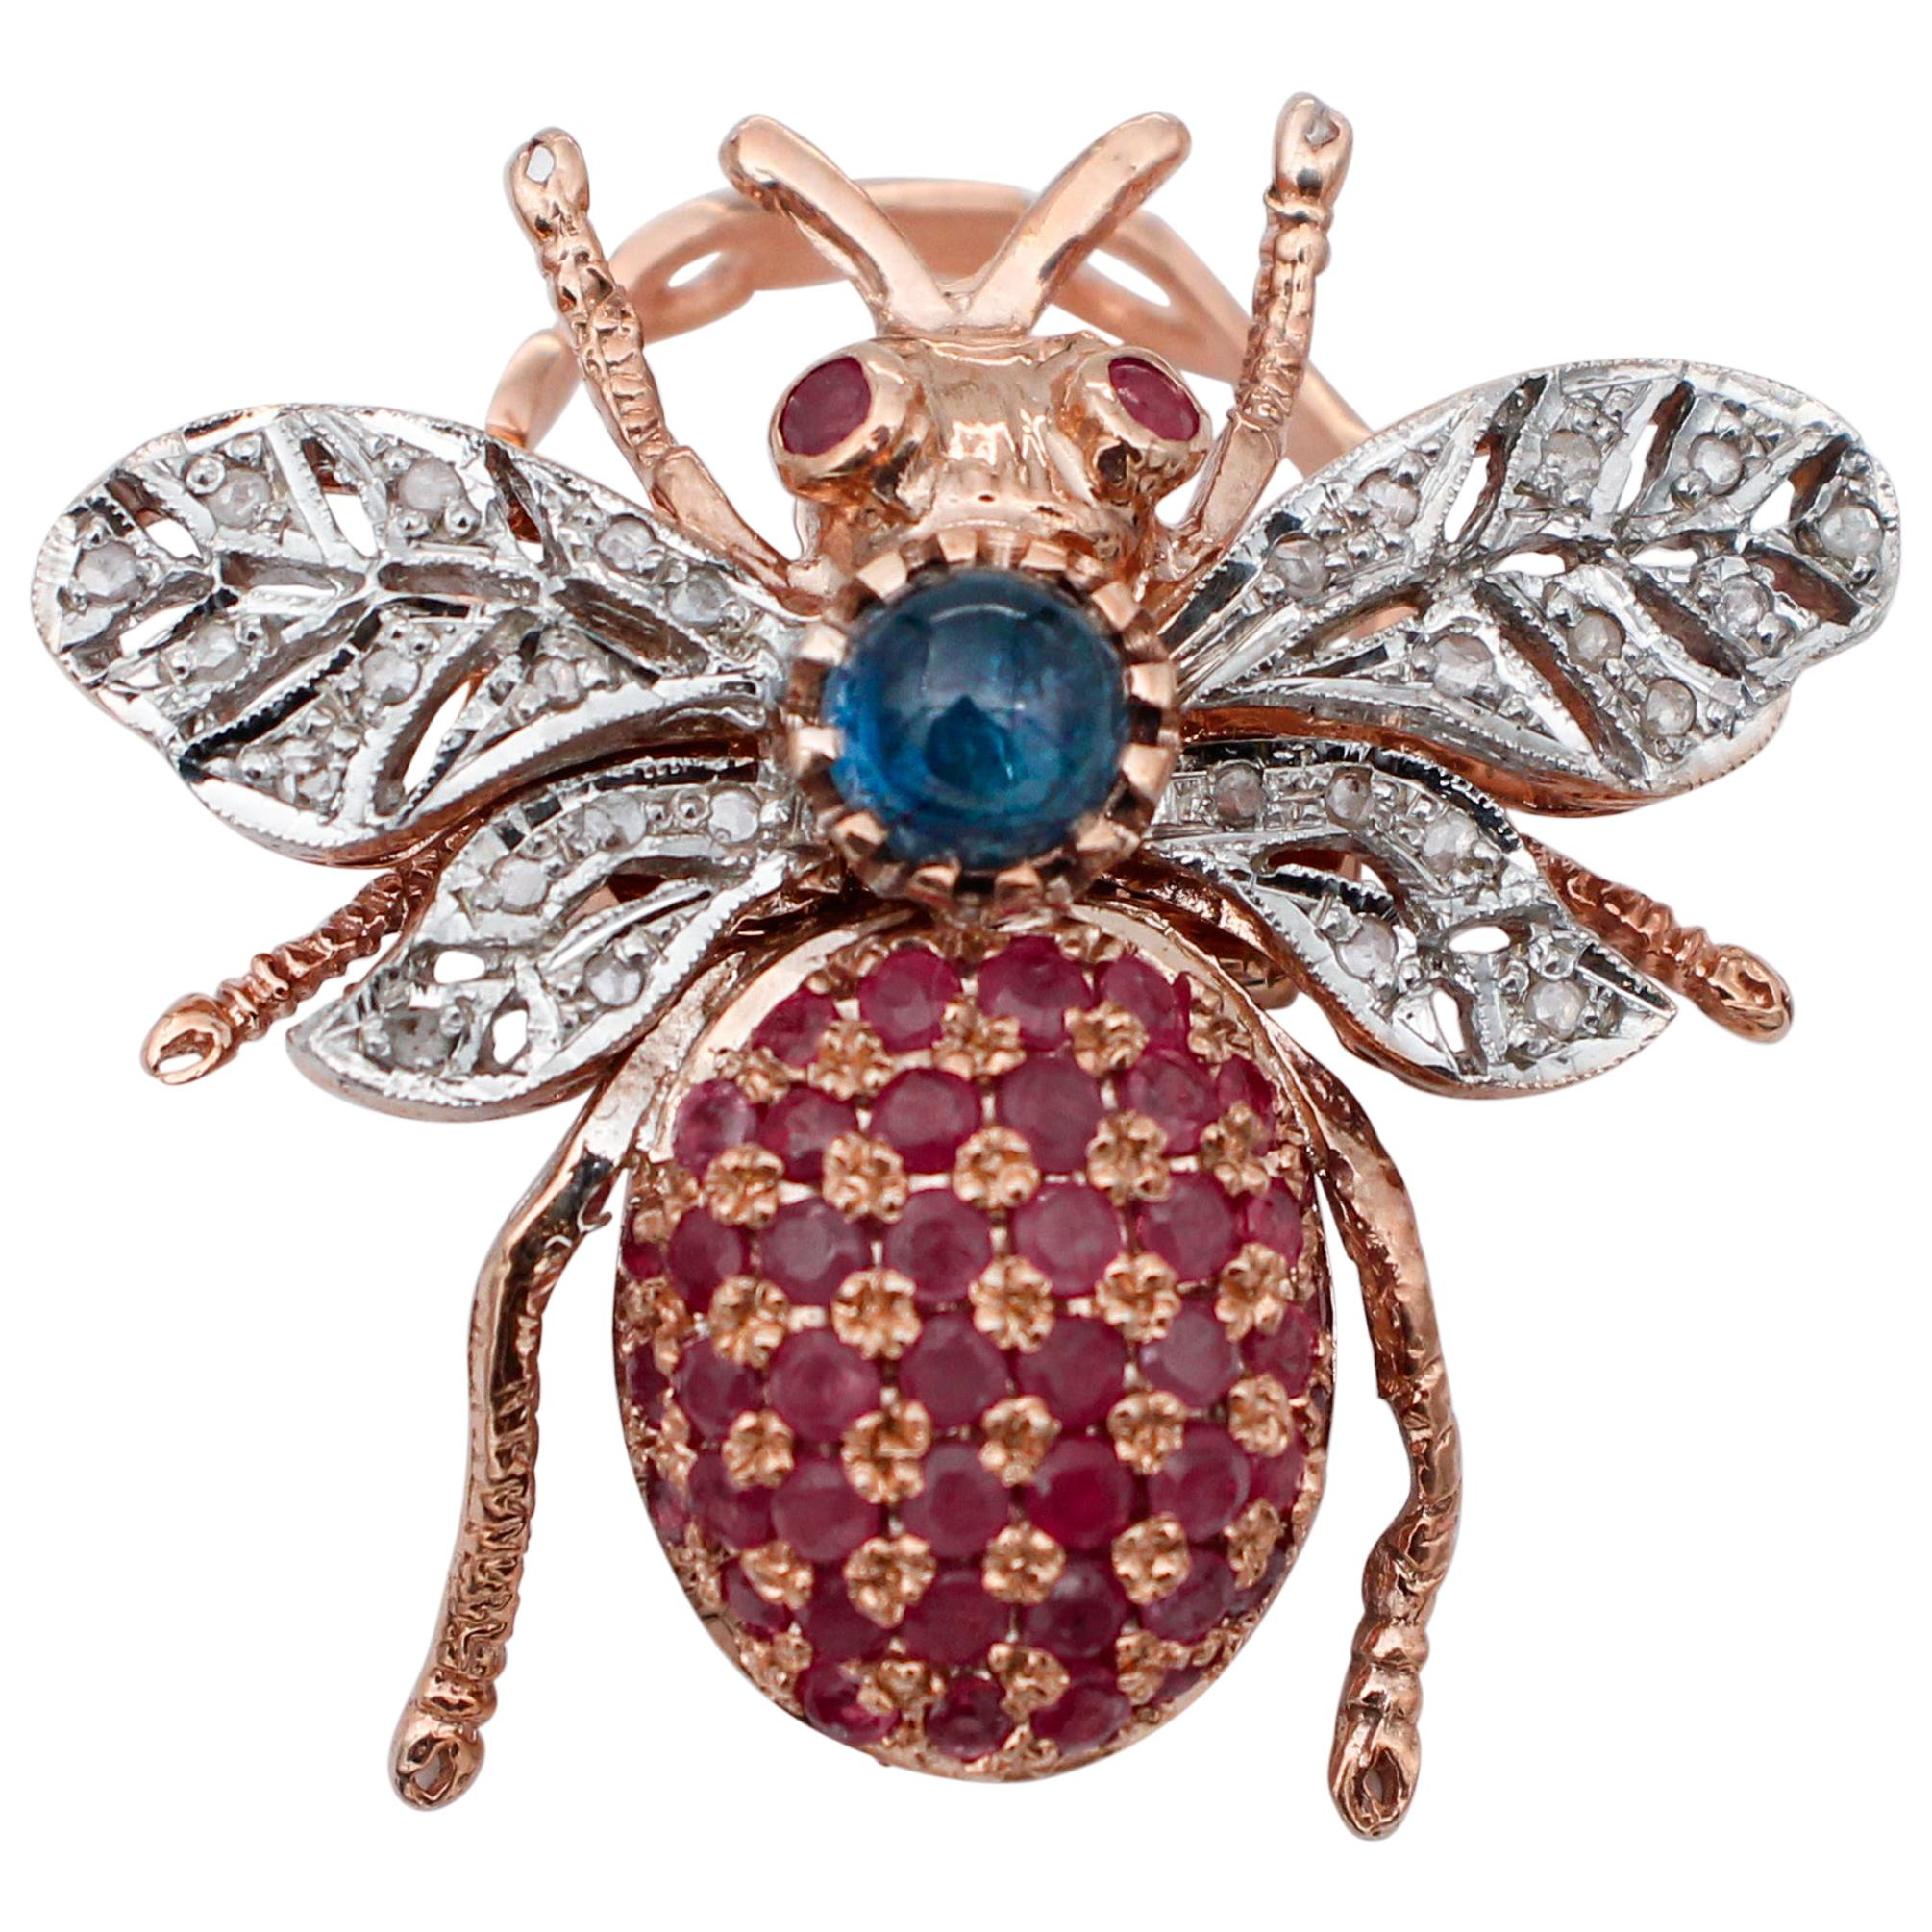 Diamonds, Sapphires, Rubies, 9 Karat Rose Gold and Silver Fly Shape Ring